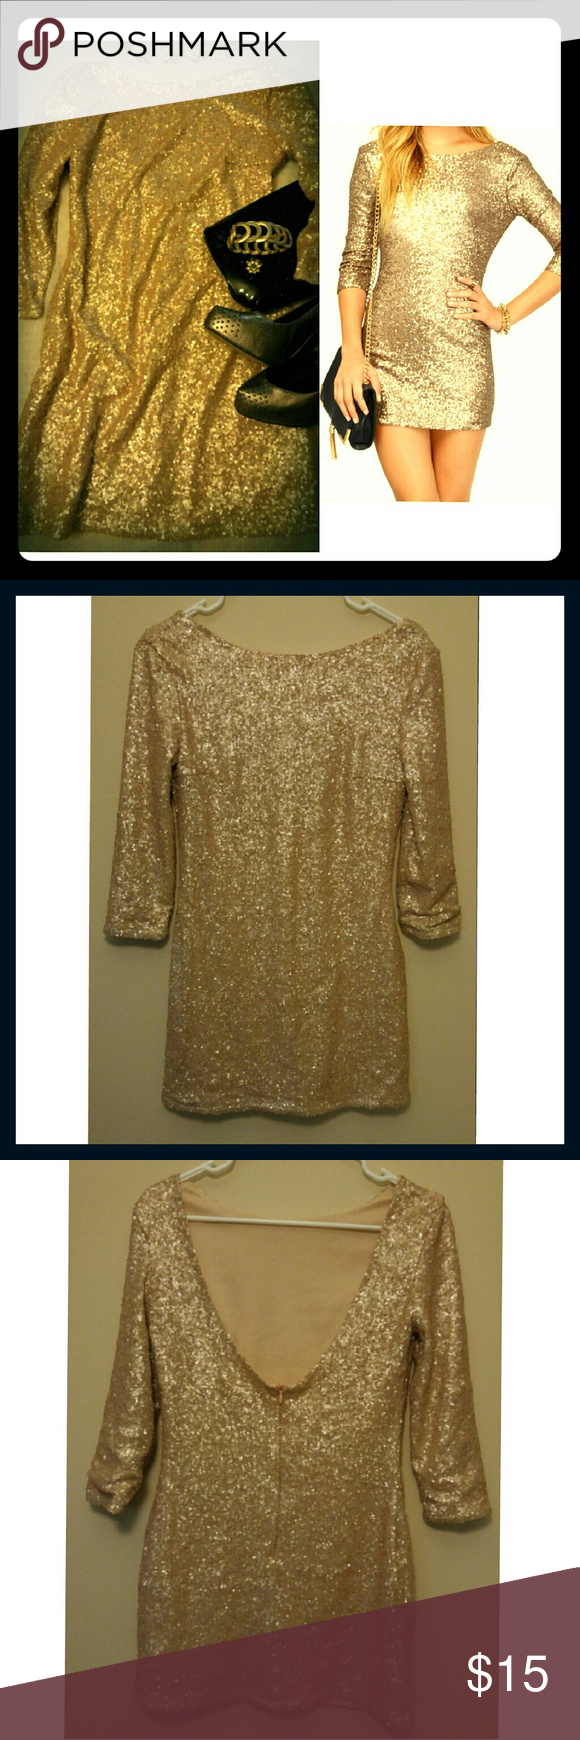 Tobi see me sequin small Body con sequin dress with pinkish tinted gold sequin.   Fun party dress with open back. Worn once. Small detail in last pic shows a tiny patch of missing sequins  not noticeable when wearing. Size is medium on tag but fits more like a small. Tobi Dresses Mini